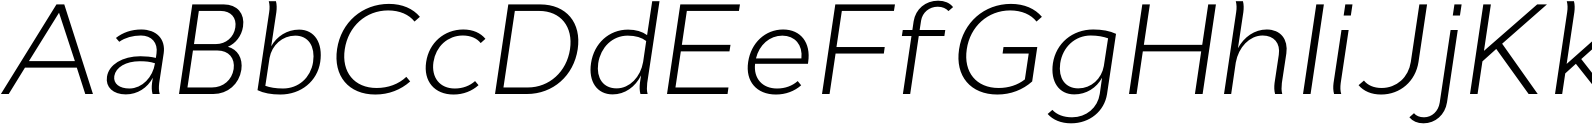 CynthoPro LightItalic